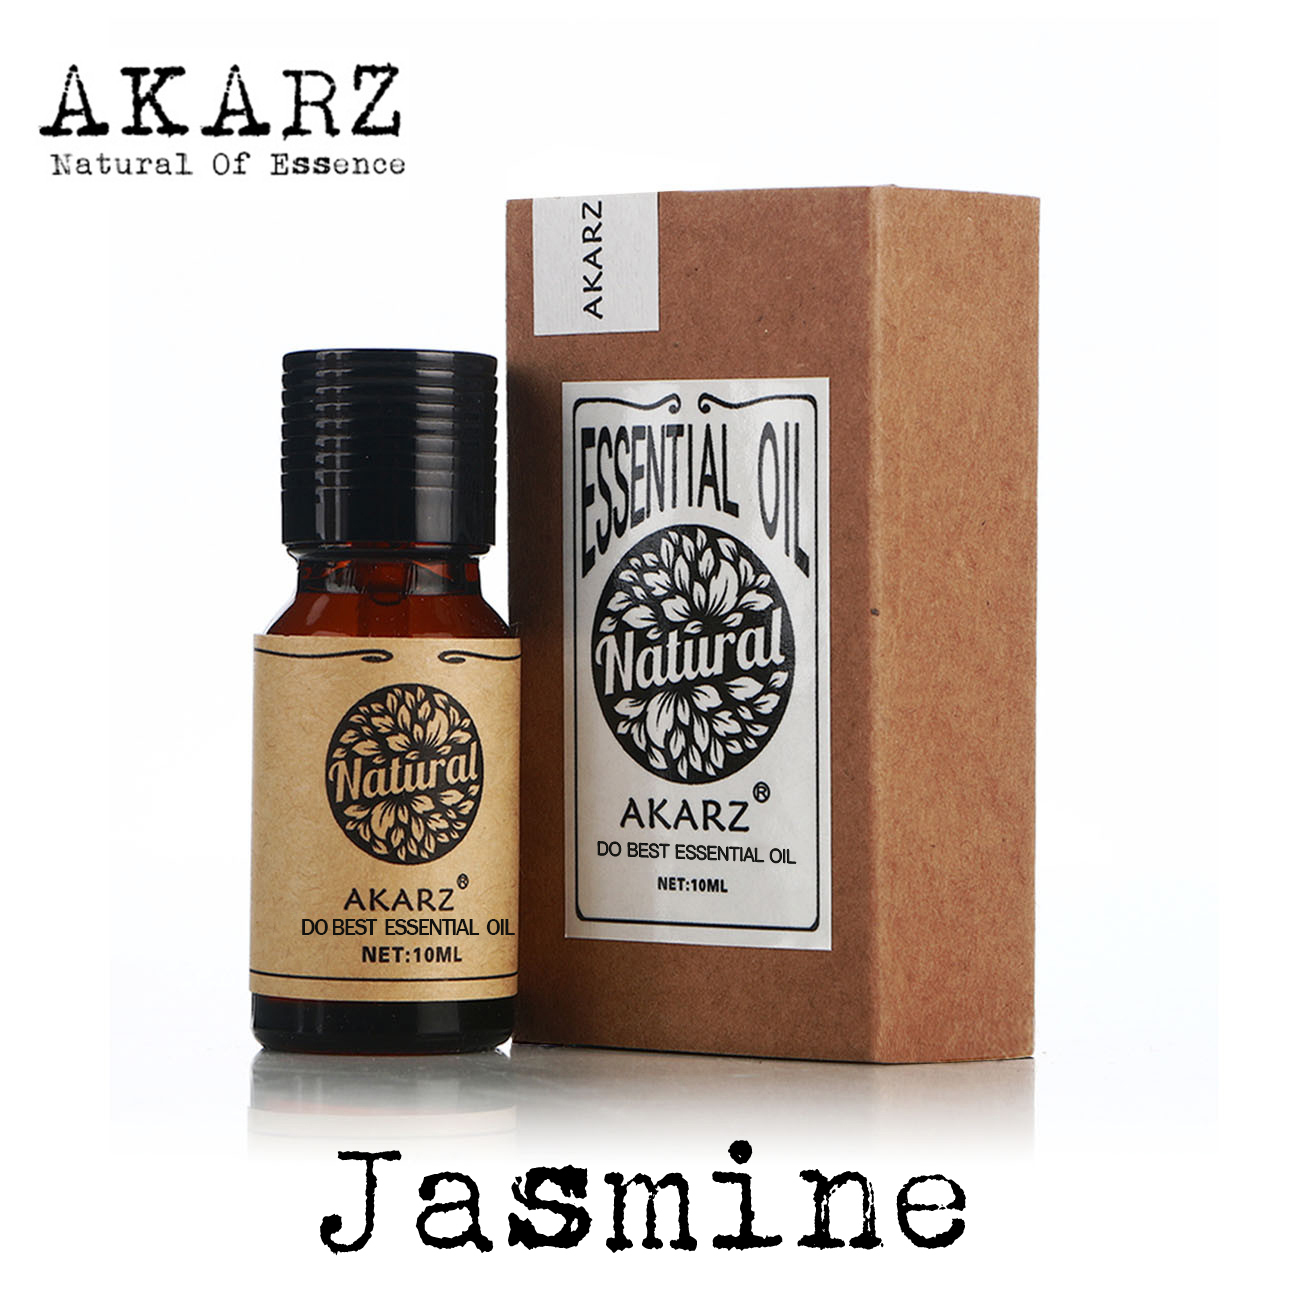 Jasmine Essential Oil AKARZ Brand Natural Oiliness Cosmetics Candle Soap Scents Making DIY Odorant Raw Material Jasmine Oil